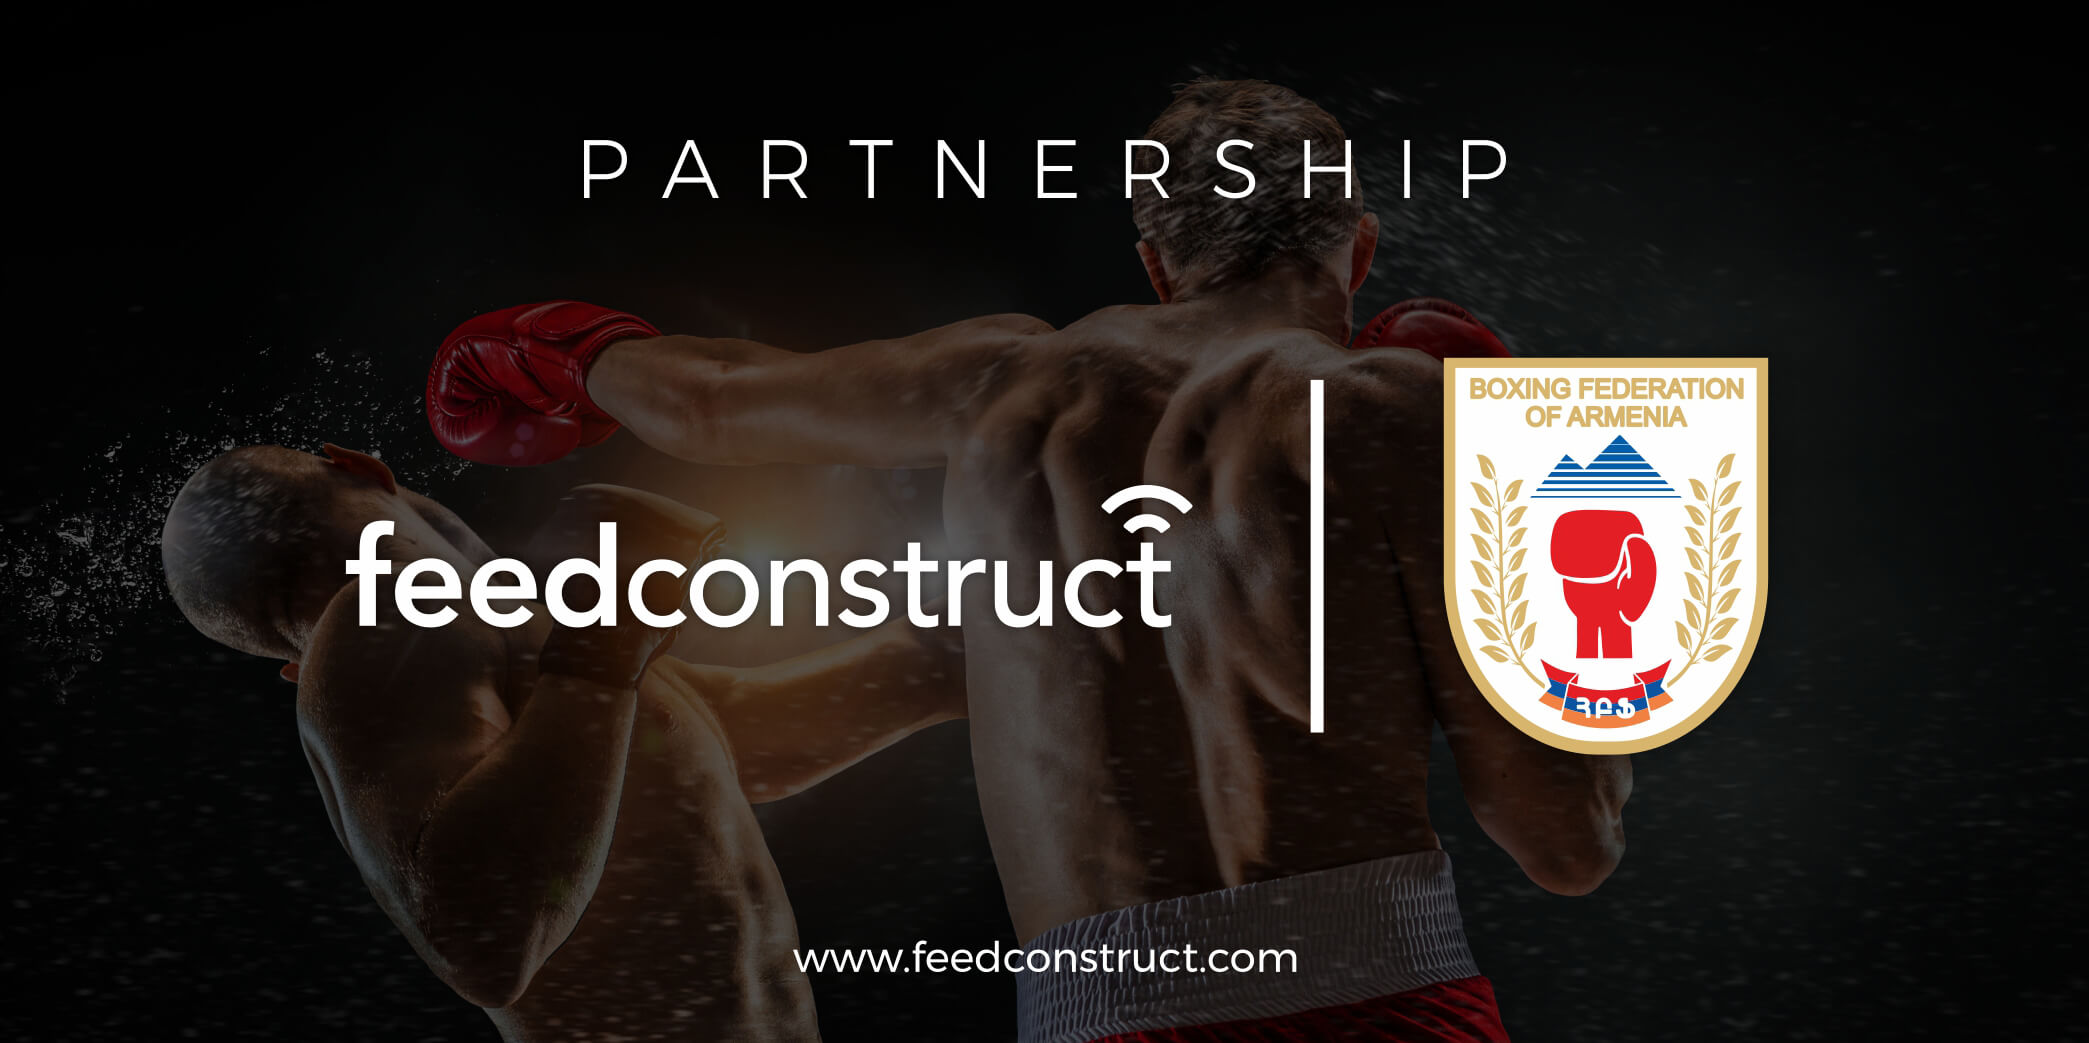 FeedConstruct welcomes the Boxing Federation of Armenia as an exclusive partner